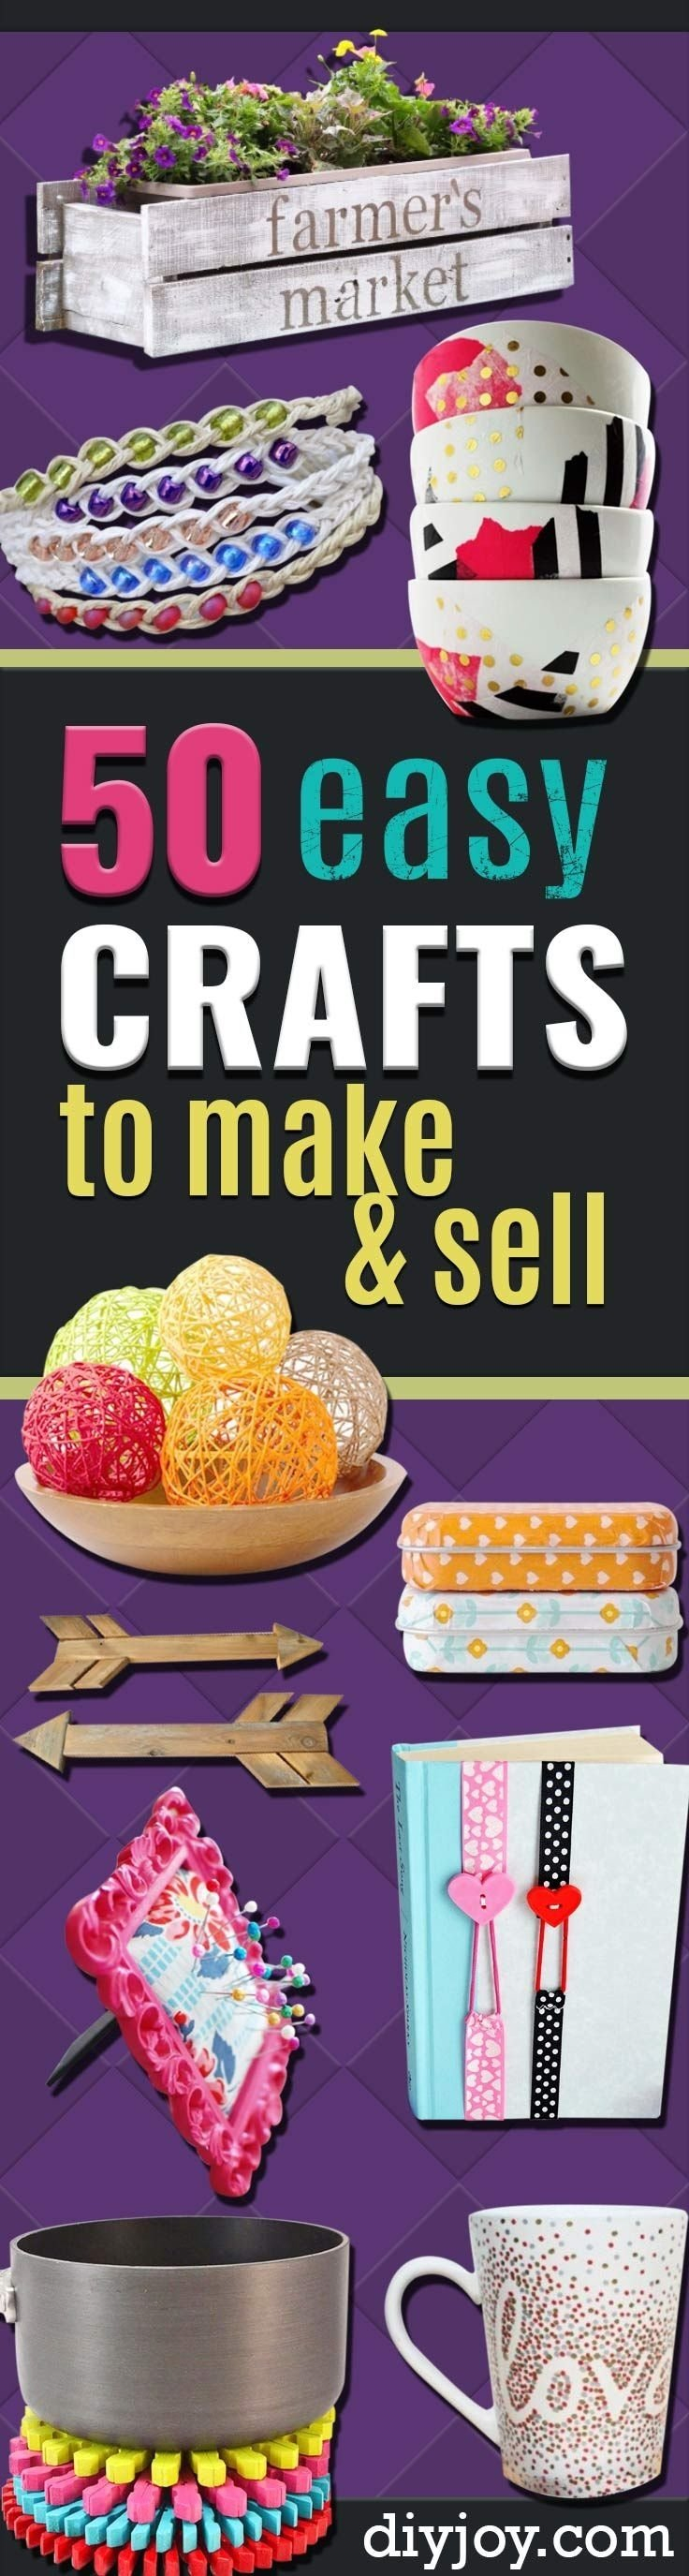 10 Perfect Ideas To Sell On Etsy 50 easy crafts to make and sell homemade crafts craft fairs and 2020